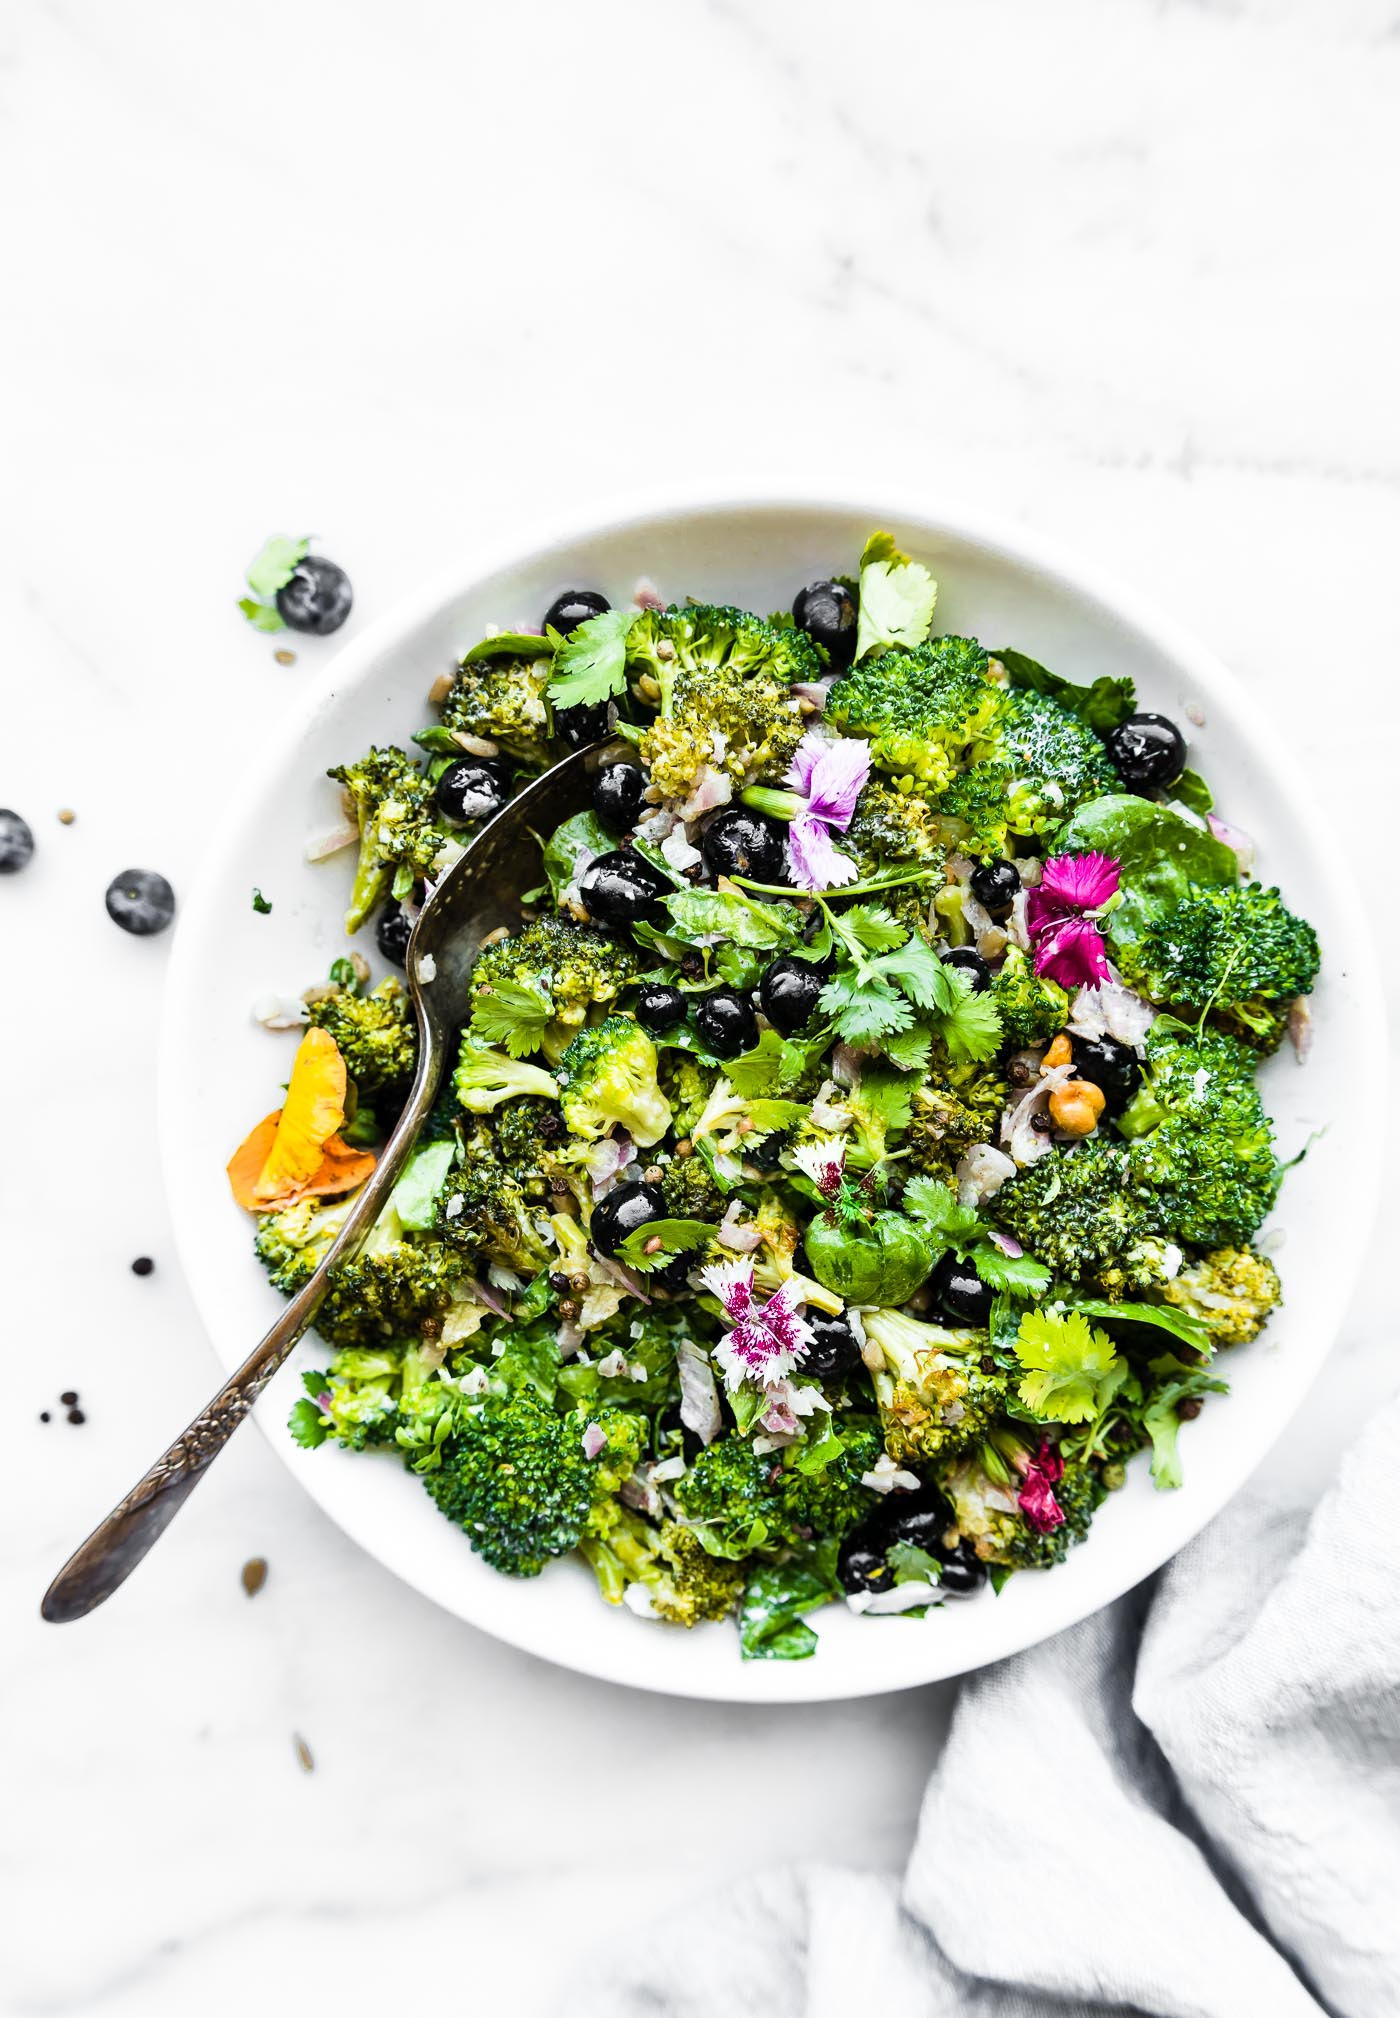 Broccoli Salad Recipe Without Mayo Detox Salad Cotter Crunch